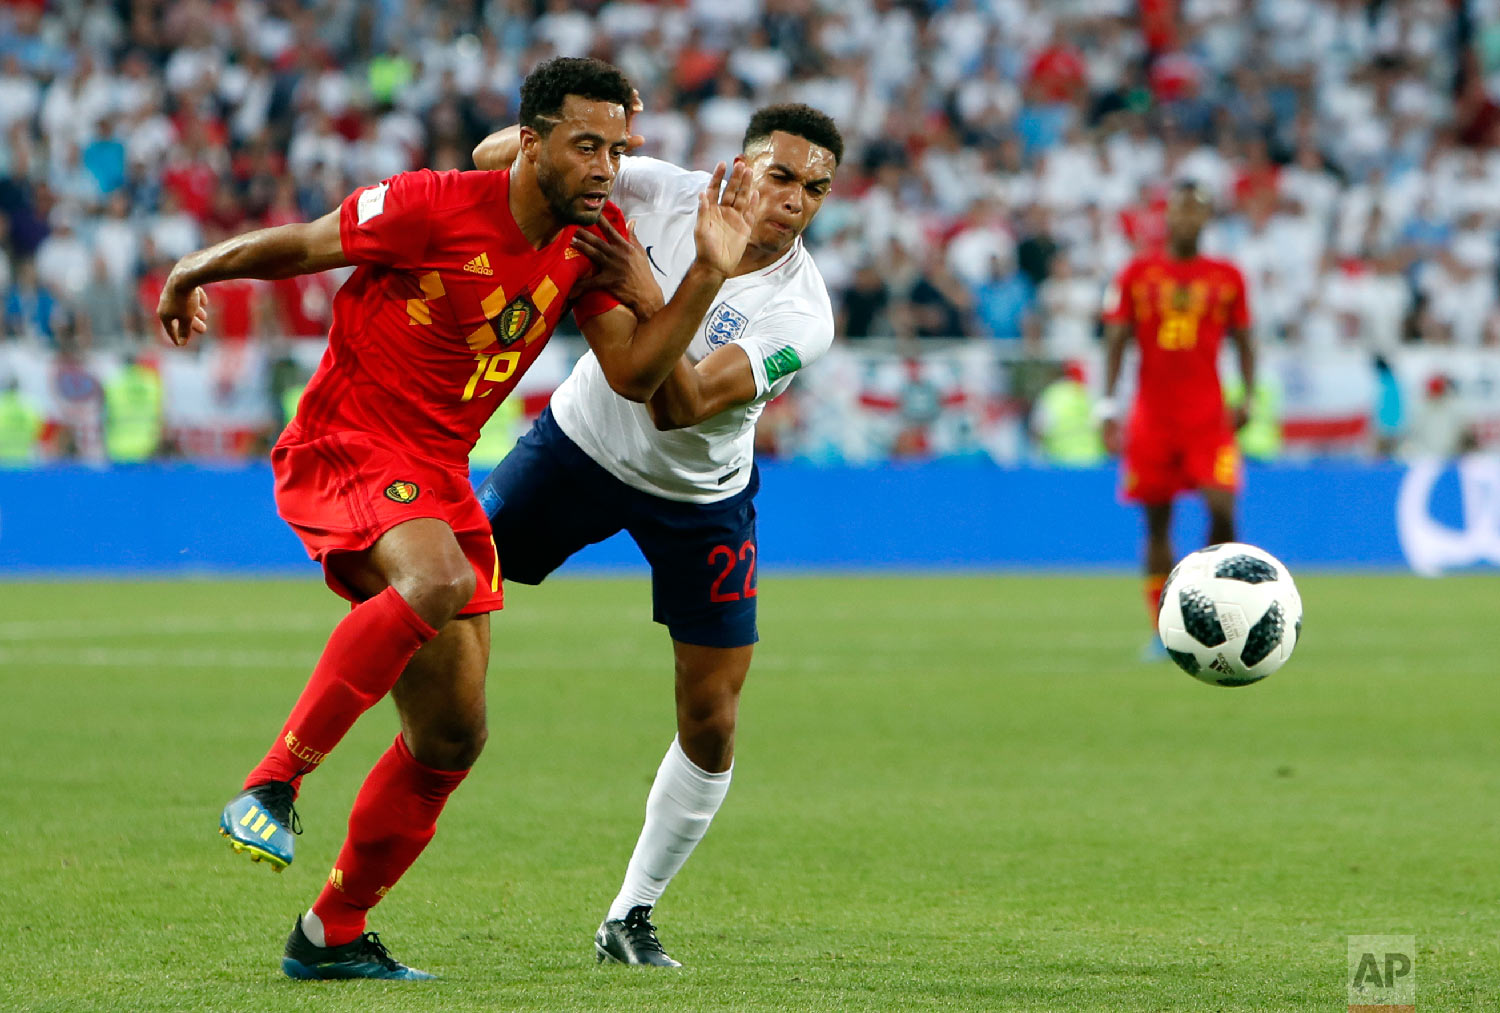 Belgium's Moussa Dembele vies for the ball with England's Trent Alexander-Arnold, right, during the group G match between England and Belgium at the 2018 soccer World Cup in the Kaliningrad Stadium in Kaliningrad, Russia, Thursday, June 28, 2018. (AP Photo/Alastair Grant)